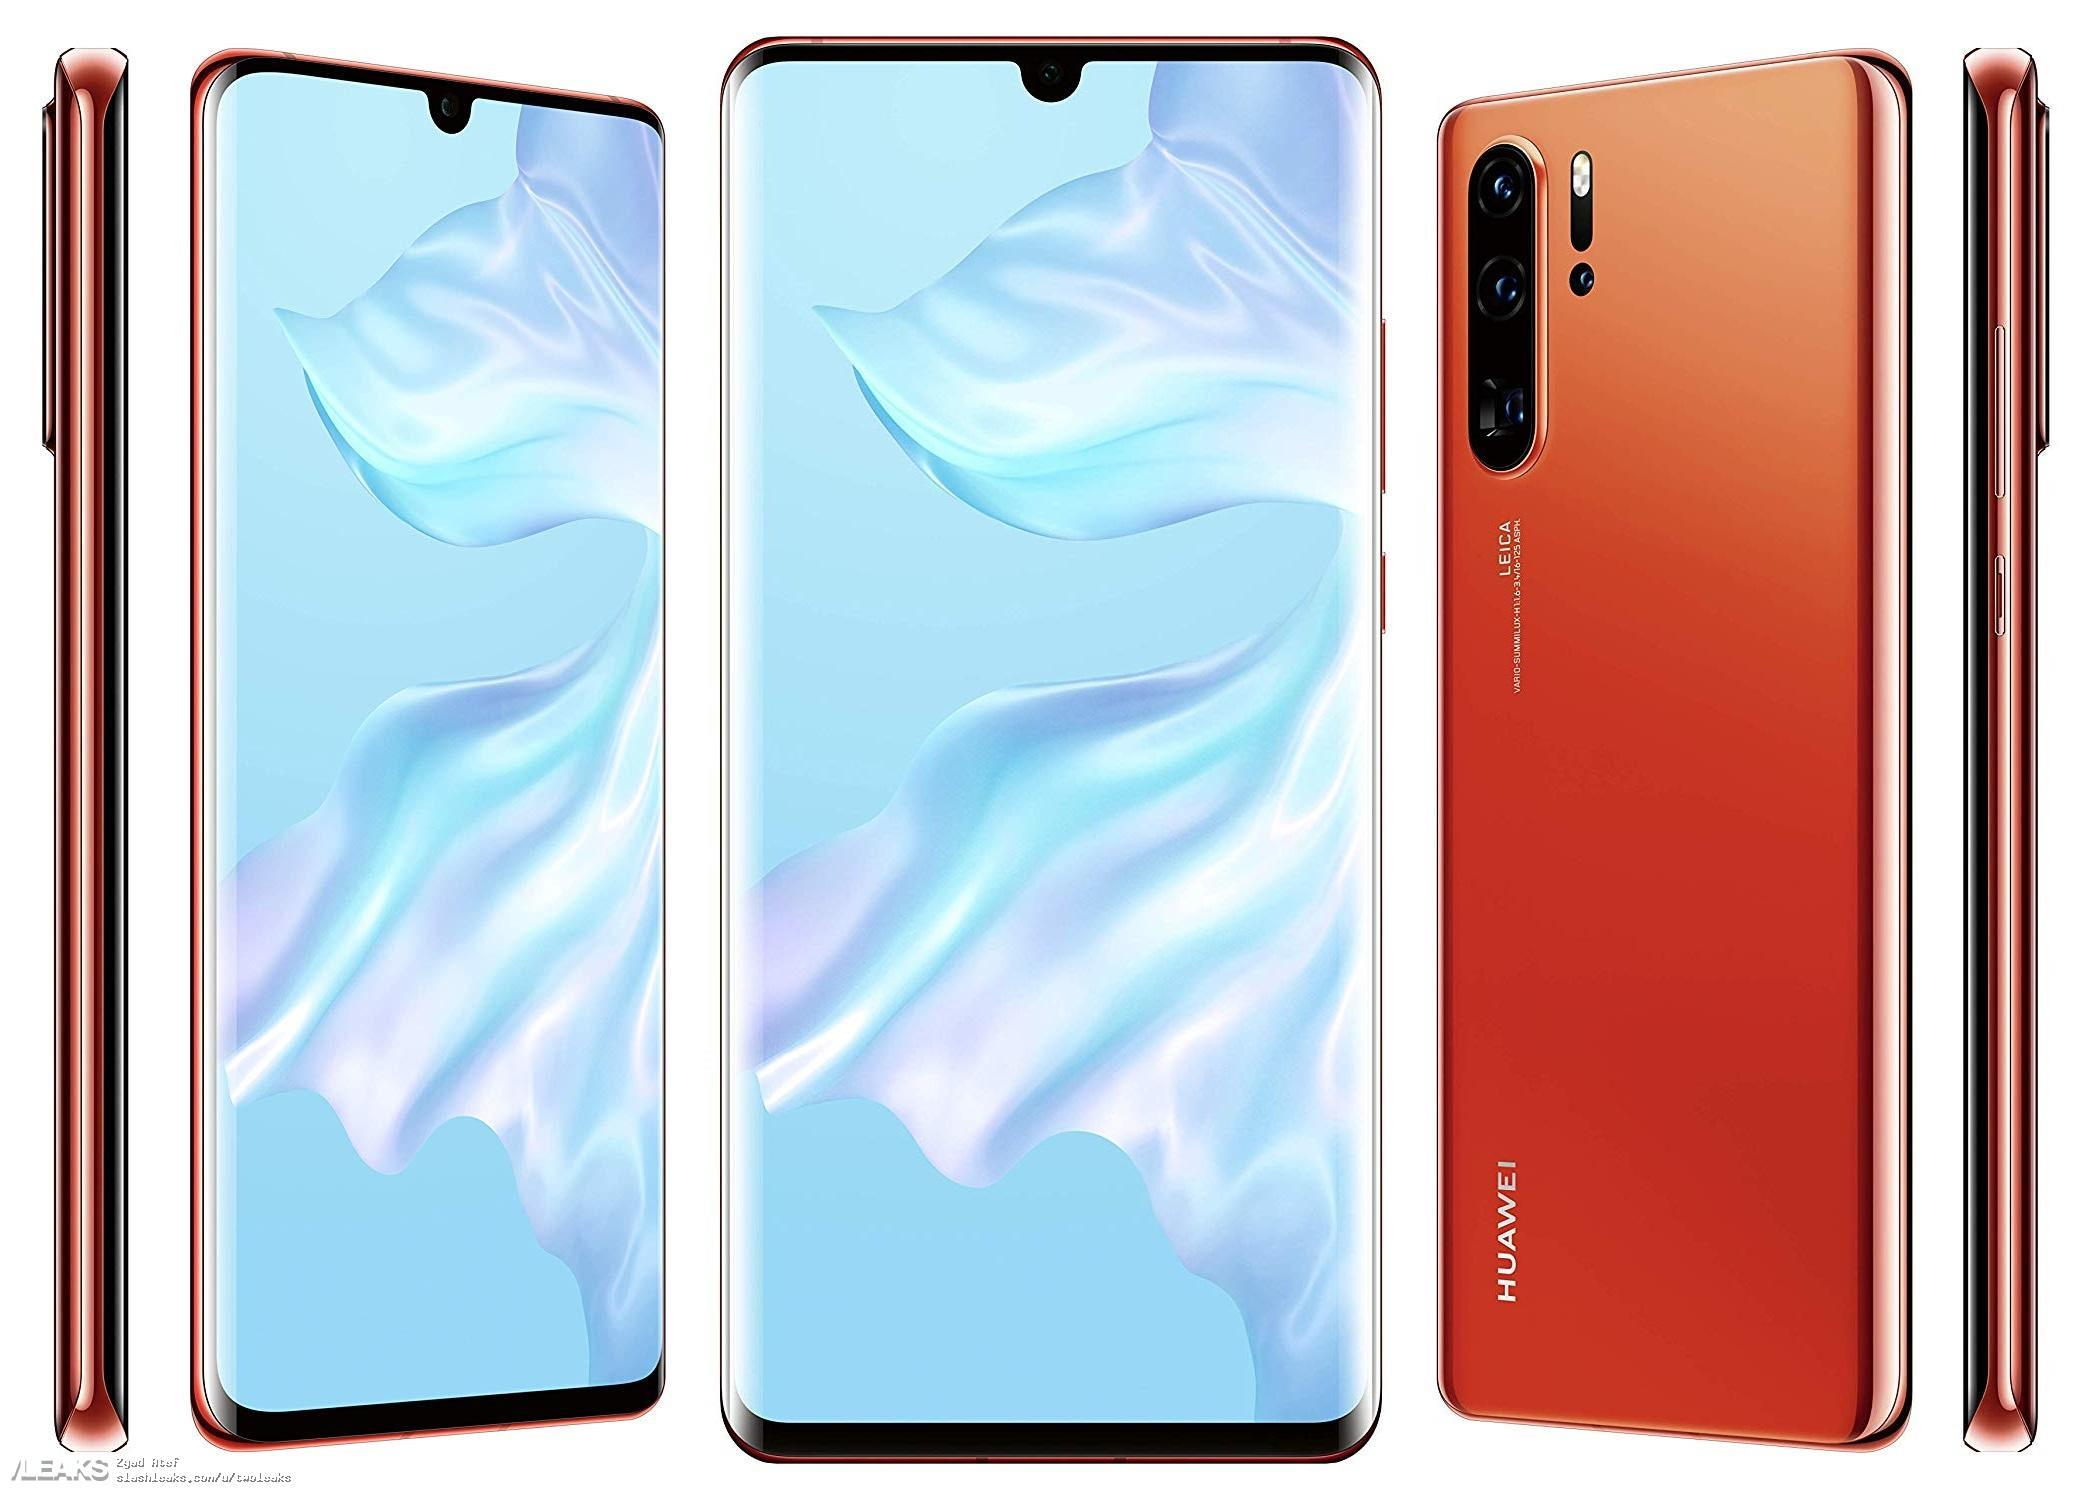 Swipe sur Google Chrome, Huawei P30 Pro, Nokia 7 Plus pirate – Tech'spresso